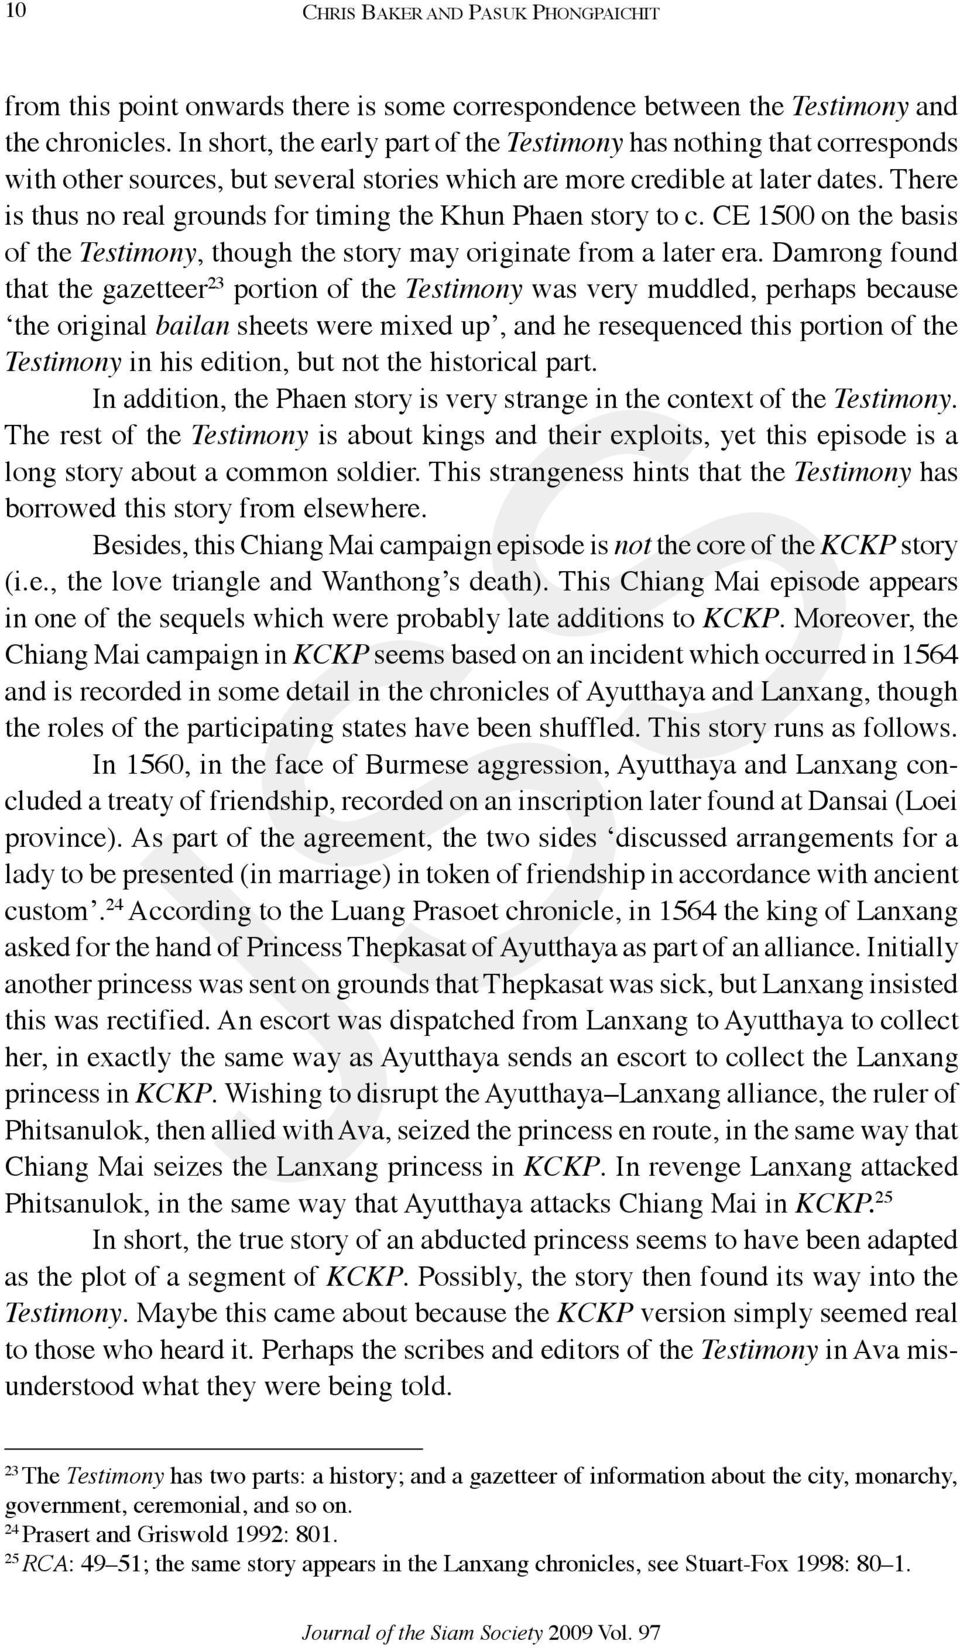 There is thus no real grounds for timing the Khun Phaen story to c. CE 1500 on the basis of the Testimony, though the story may originate from a later era.